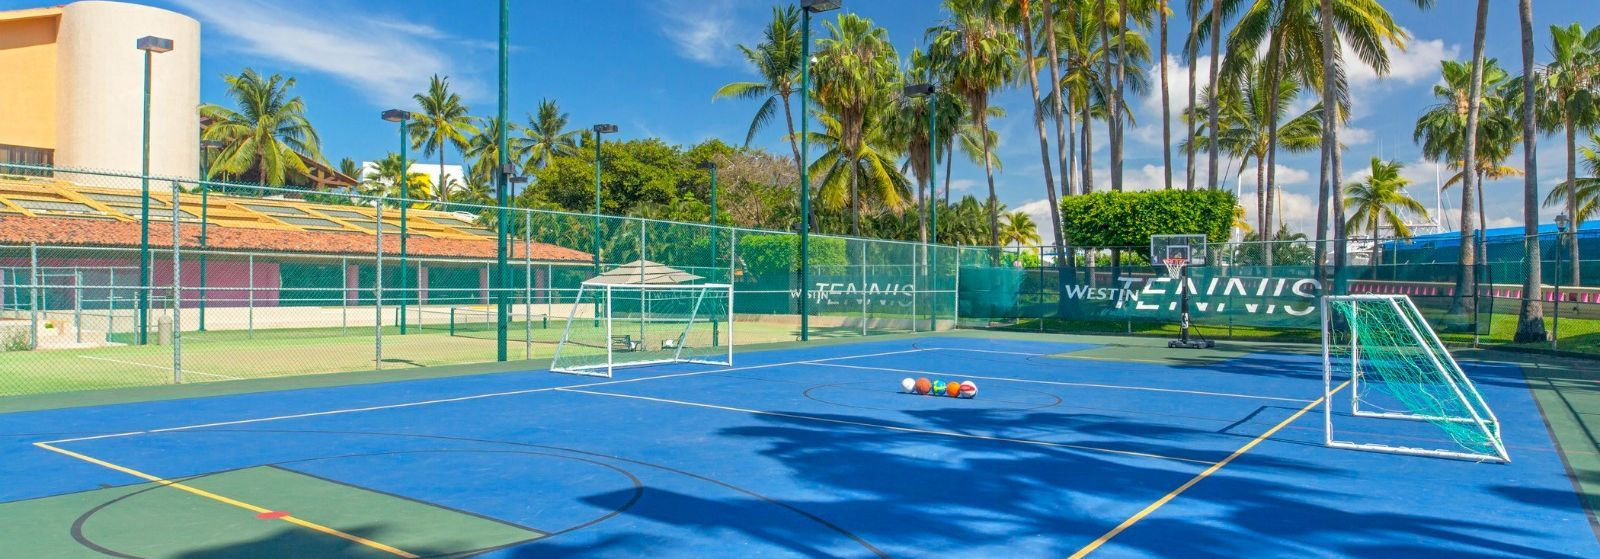 Tennis in Puerto Vallarta - The Westin Golf Resort & Spa, Puerto Vallarta